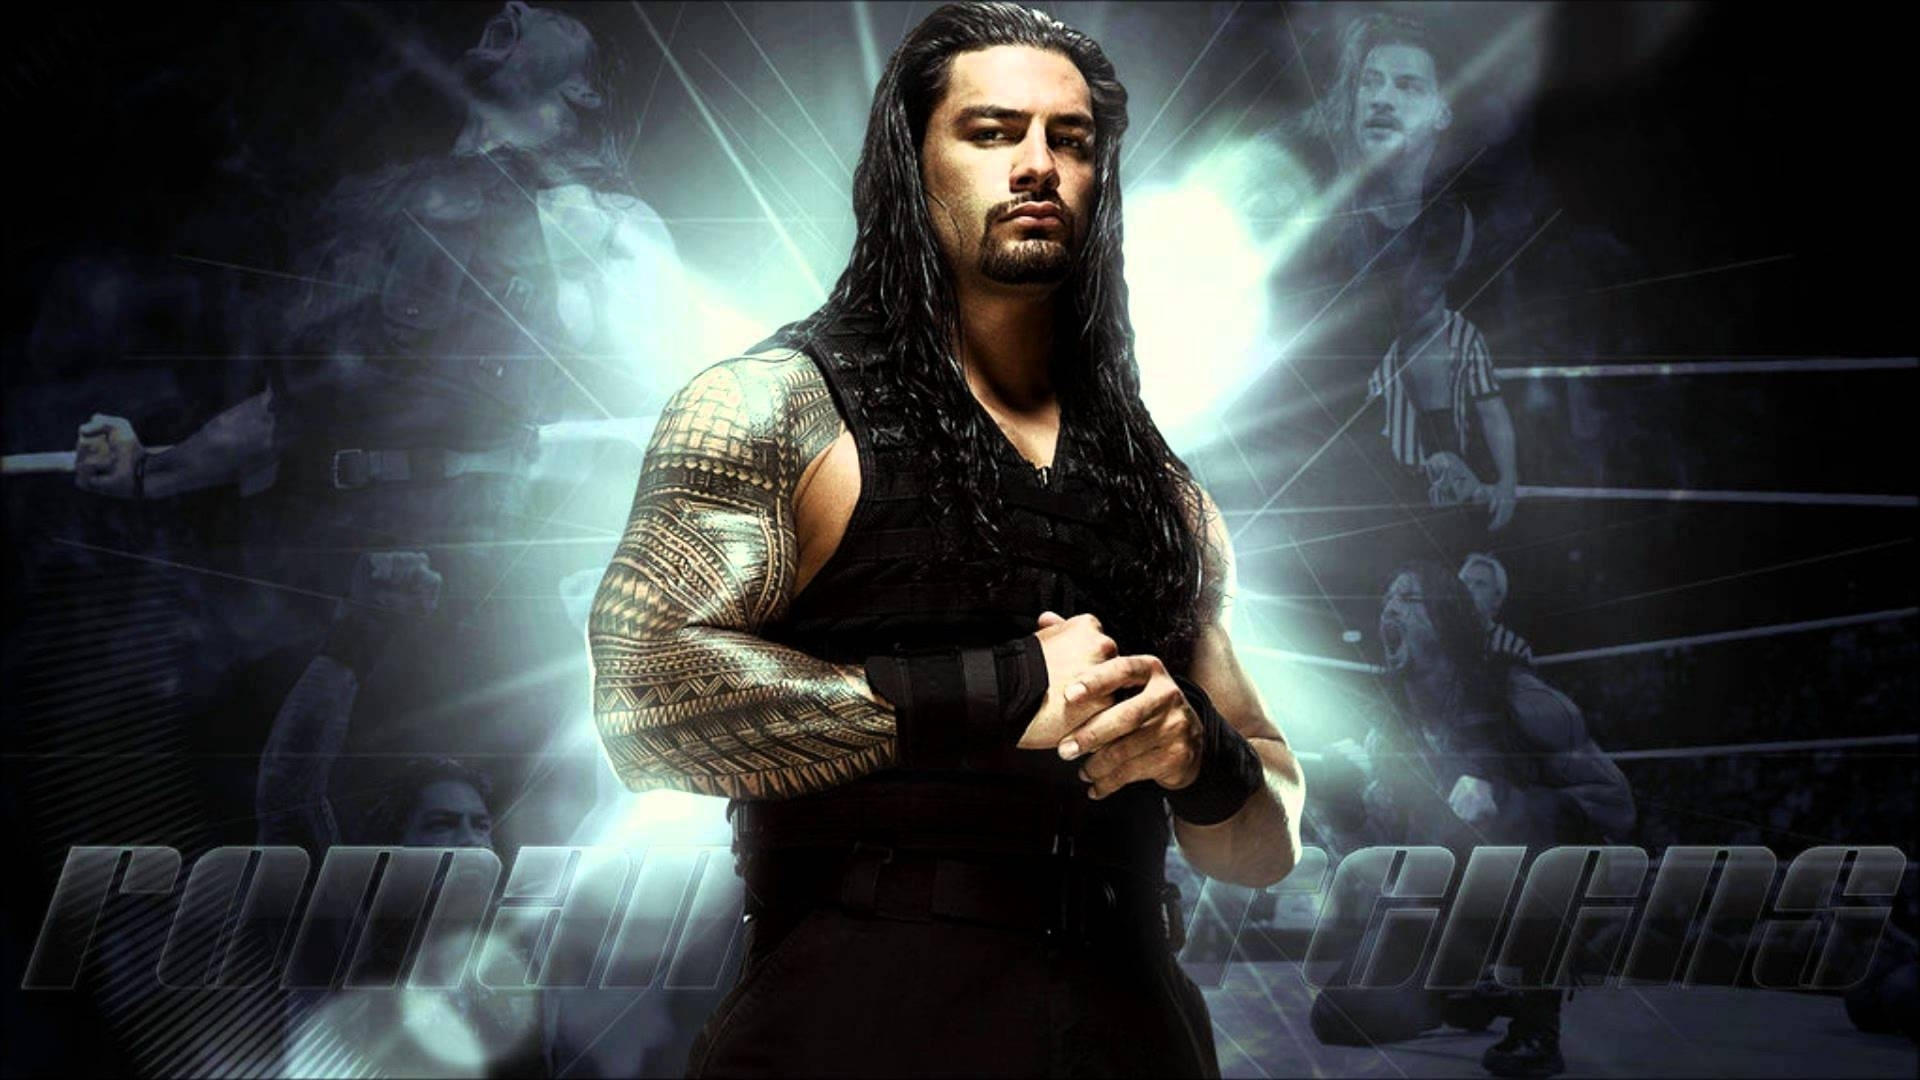 10 Top Wwe Roman Reigns Wallpapers FULL HD 1920×1080 For ...